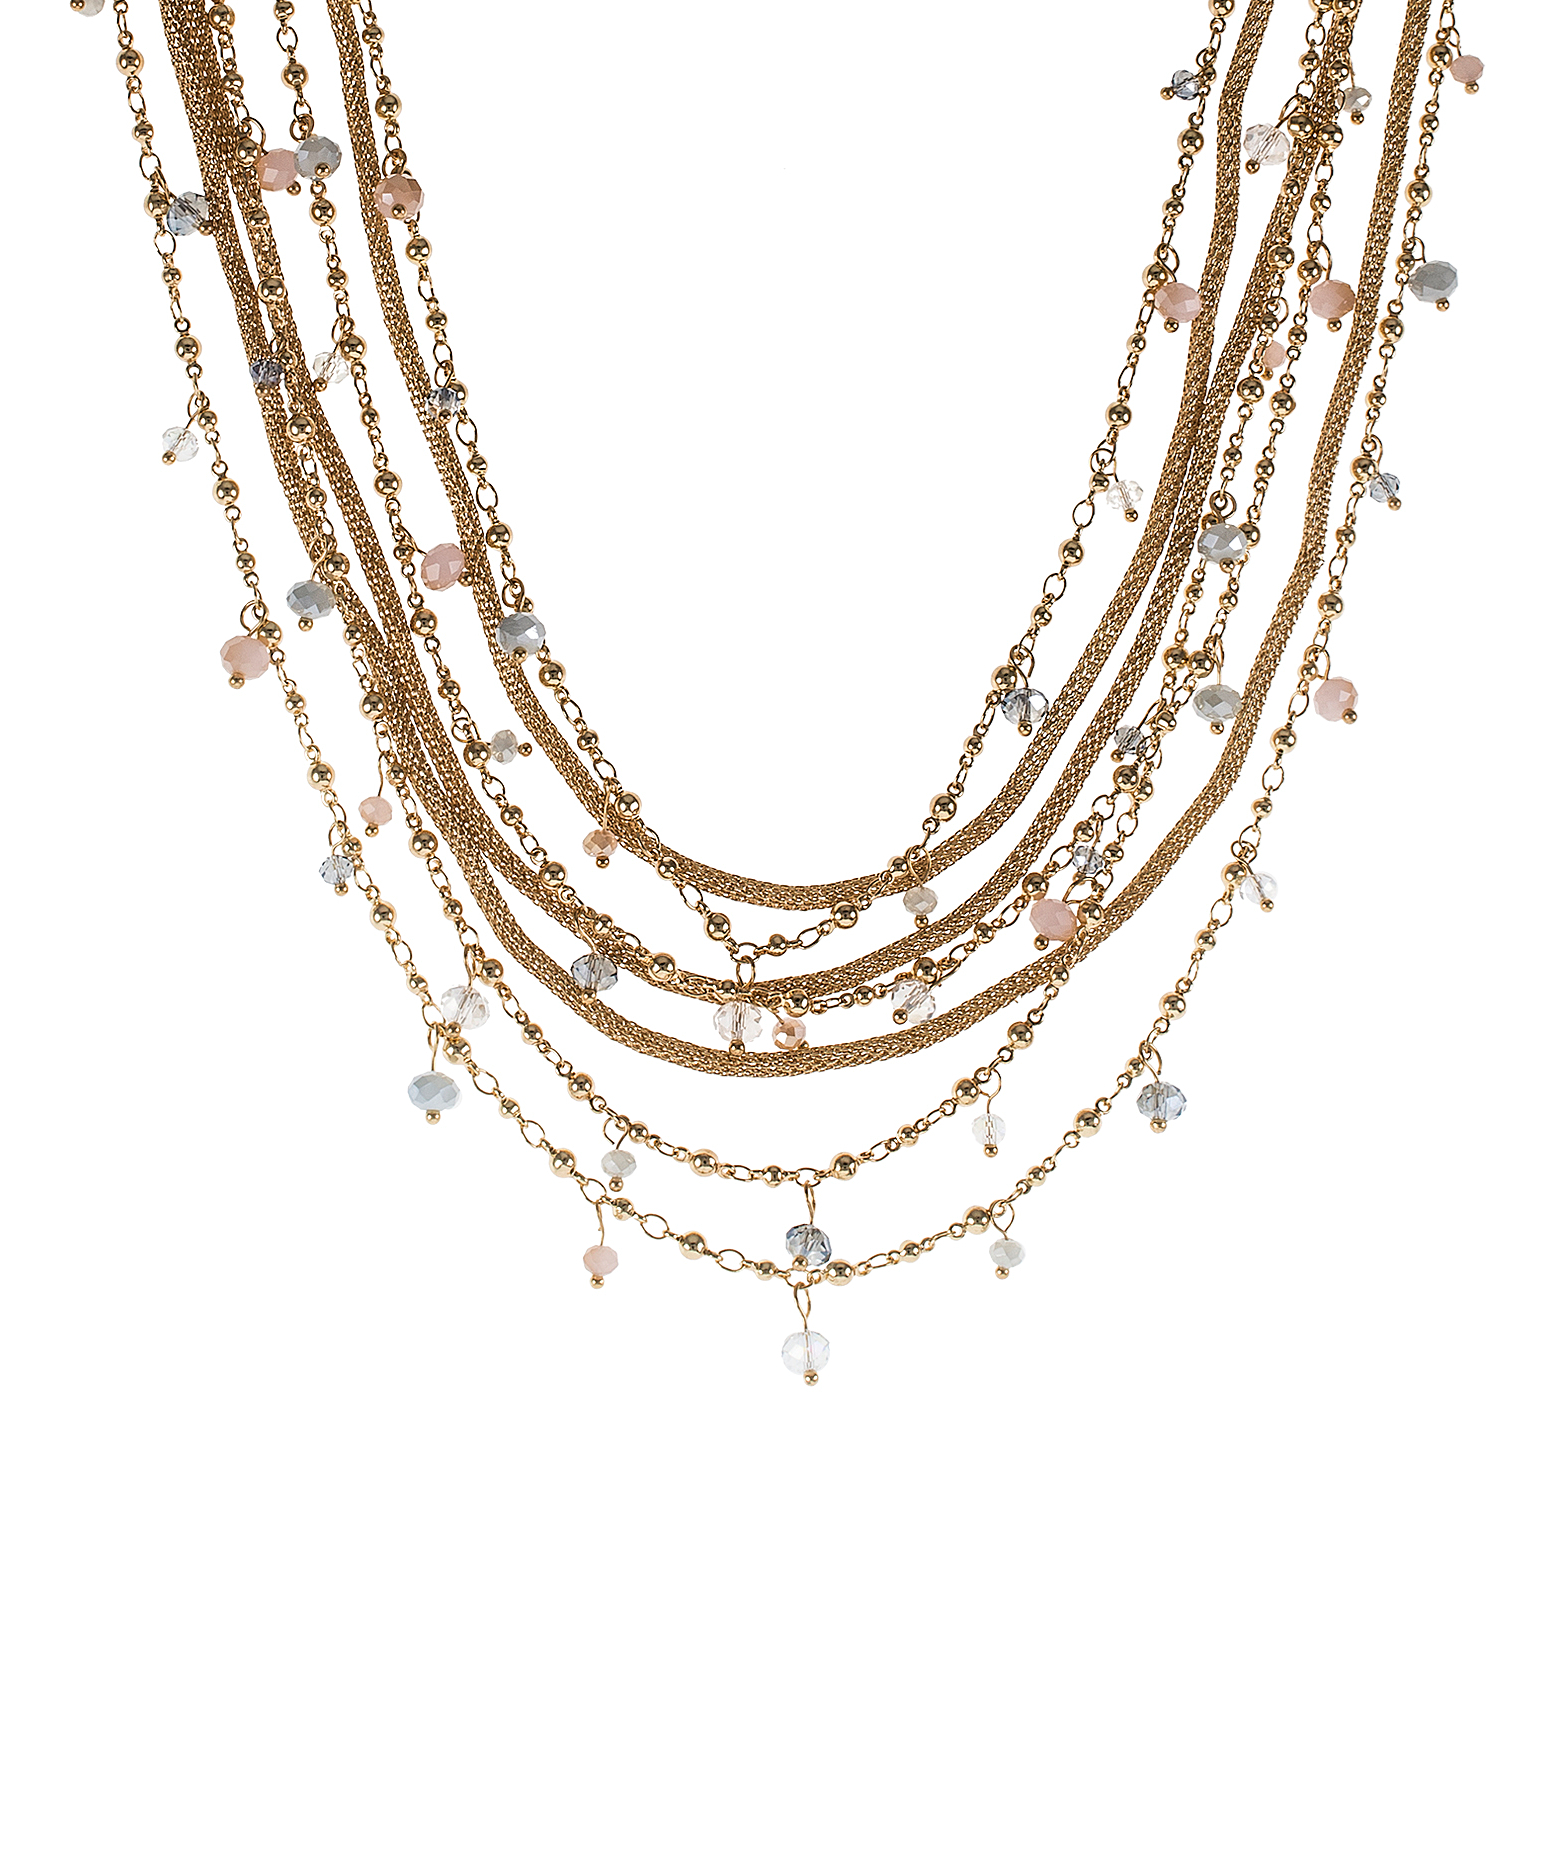 jardin multi stranded necklace with crystal accent in